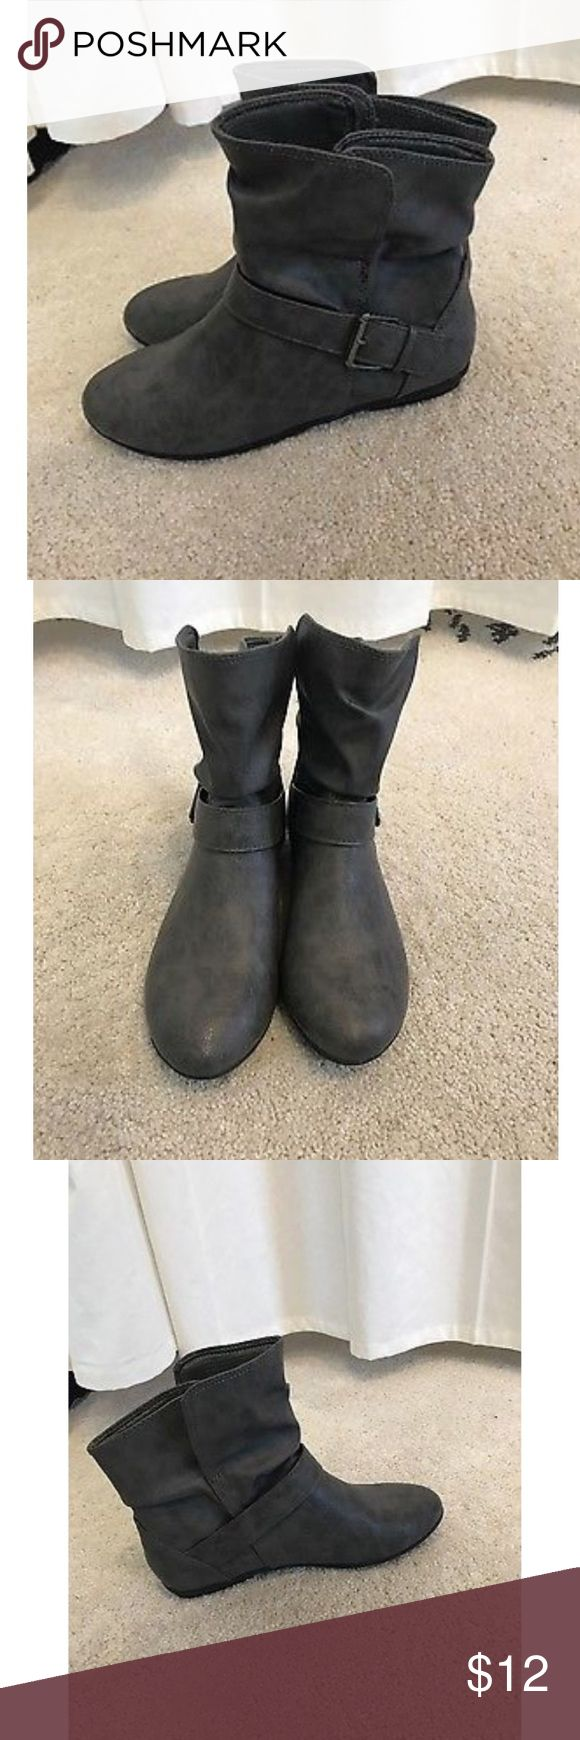 Lower East Side Womens Slip On Boots with buckle Lower East Side Womens Slip On Gray Boots with buckle Size 8.5M. New without box 📦 lower east side Shoes Ankle Boots & Booties